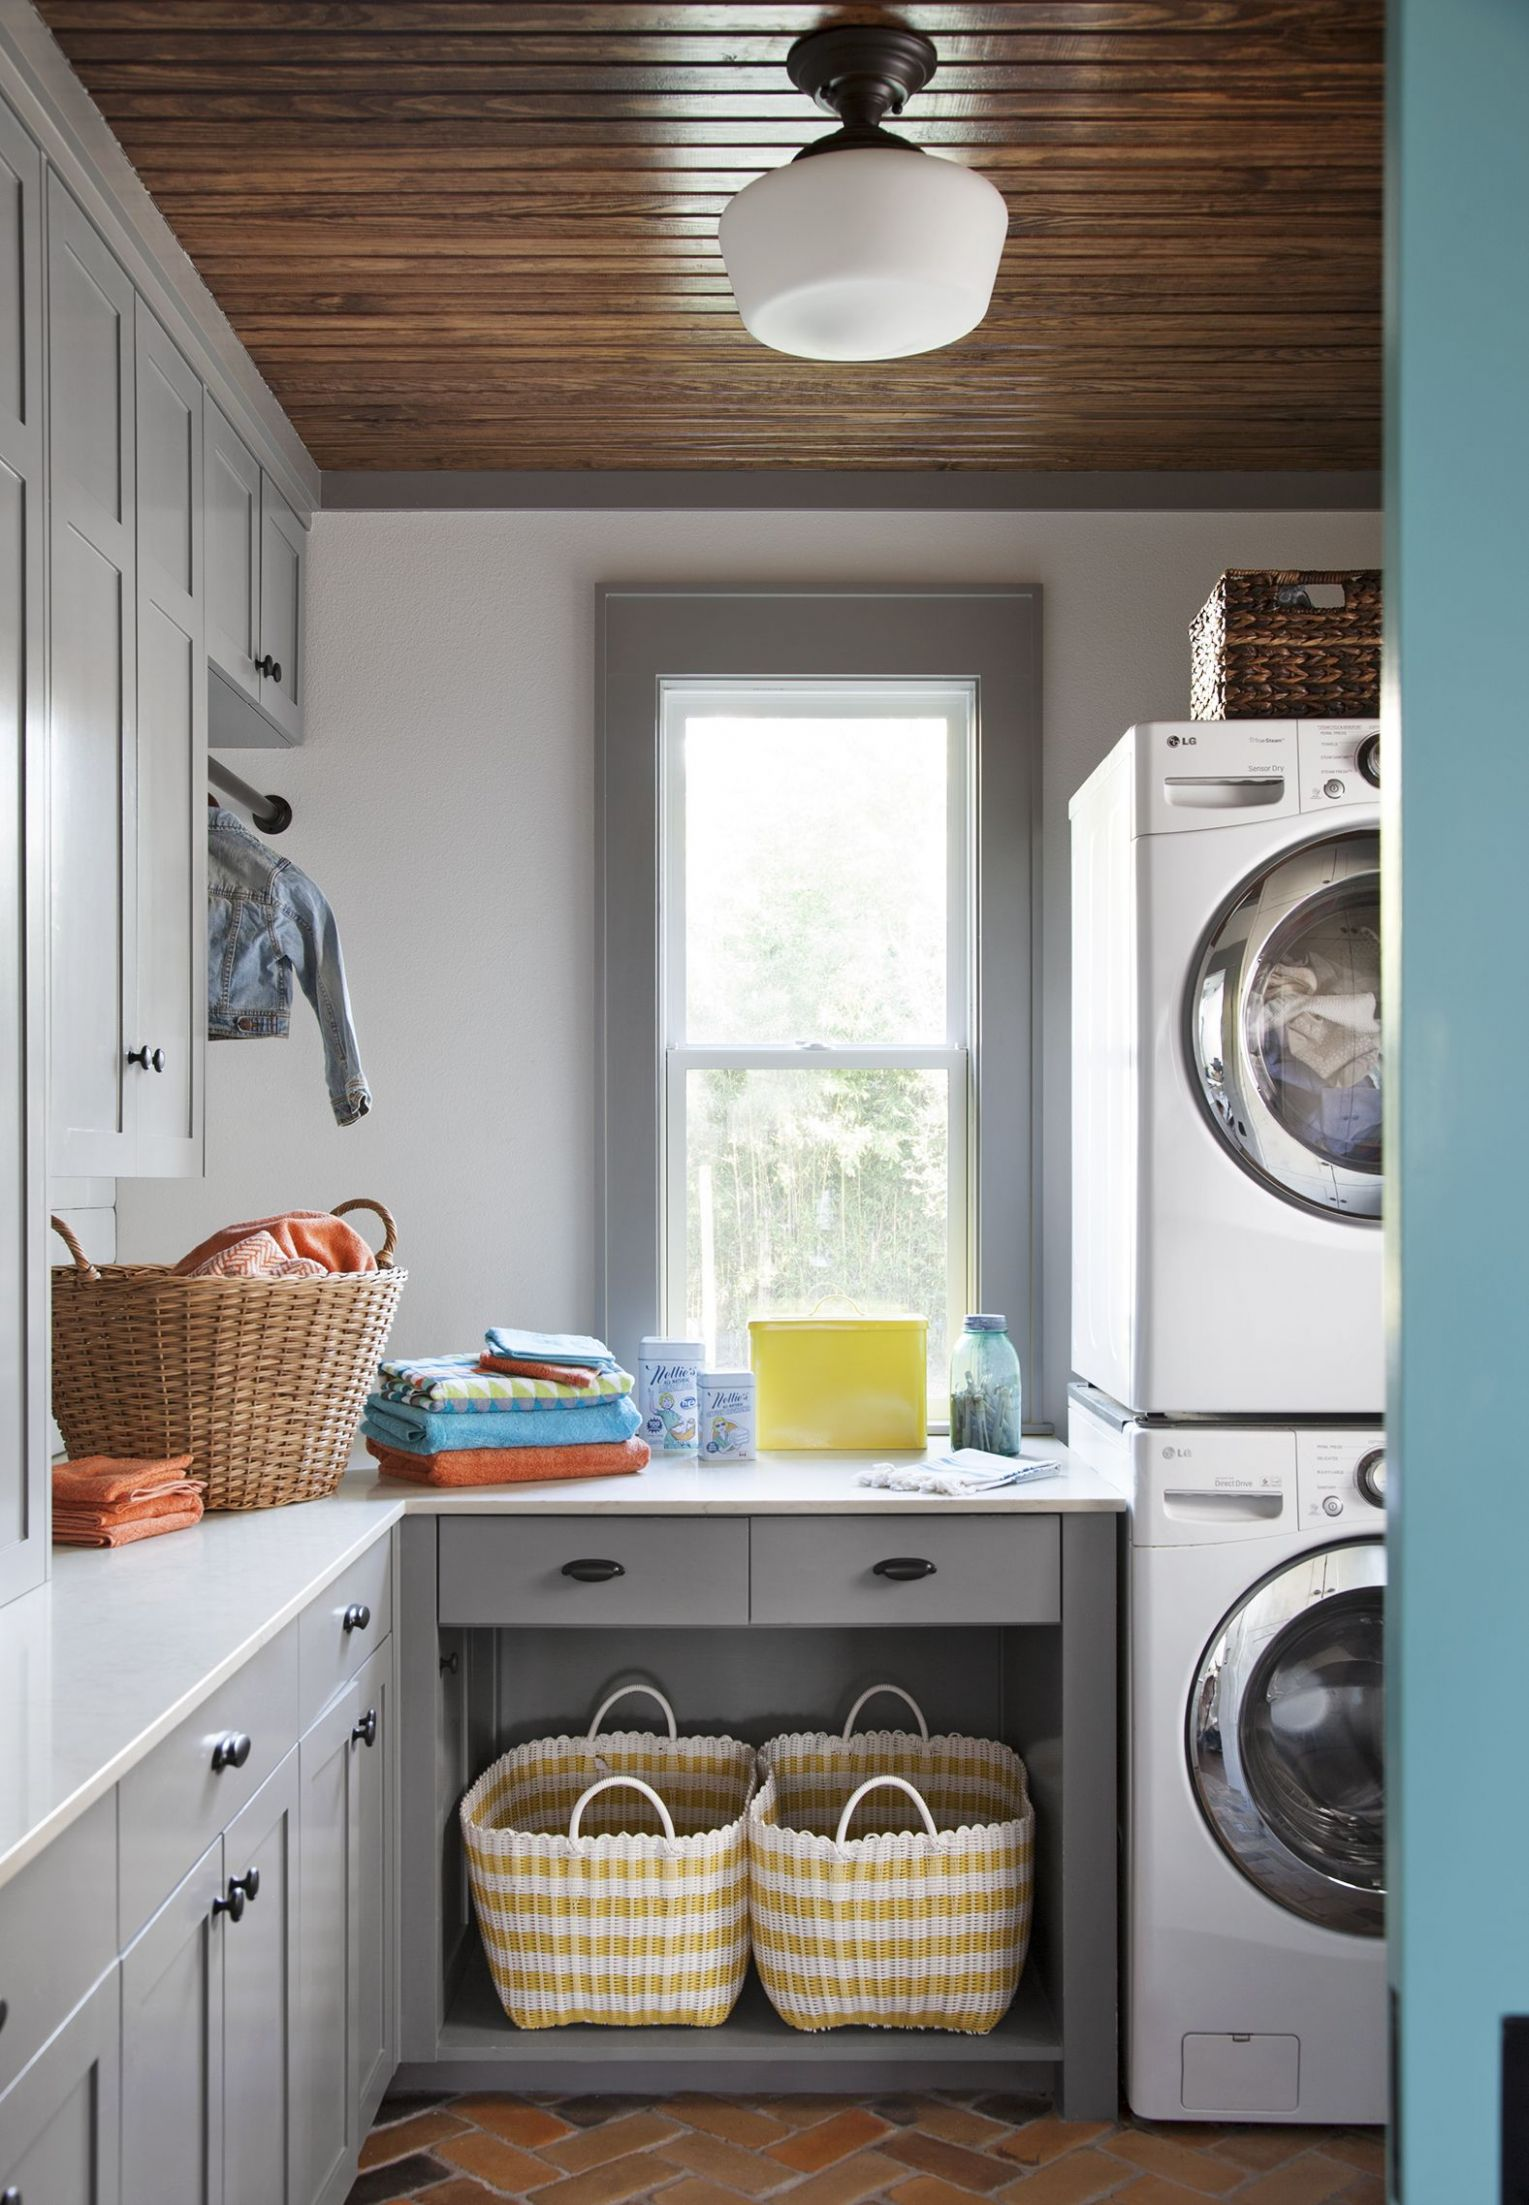 Opening Up a Snug 9 Cottage | Laundry room design, Small ..